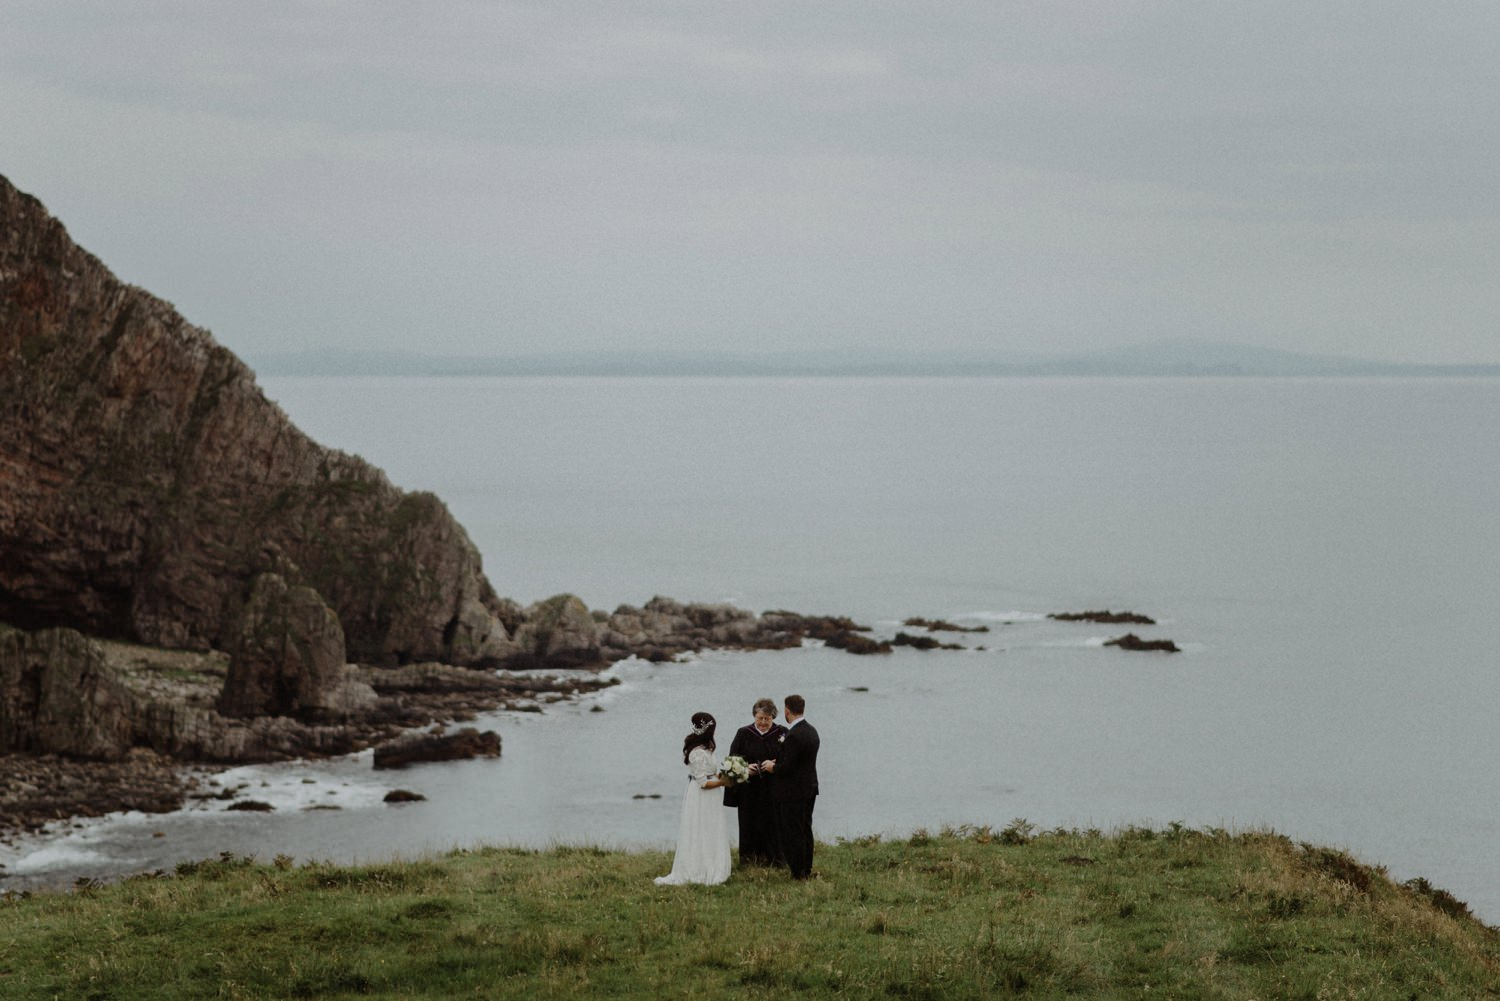 wedding ceremony on cliffside